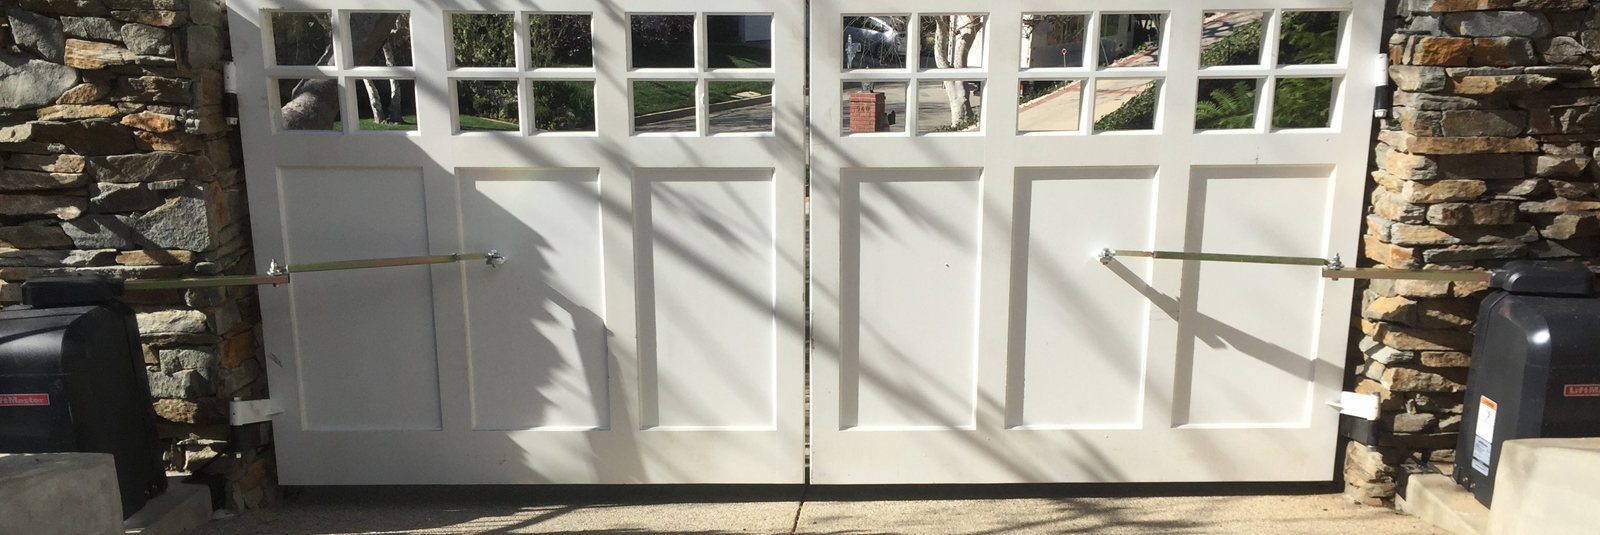 Automatic Gates Openers Residential Driveway Gates Automatic Gates Electric Gates Los Angeles